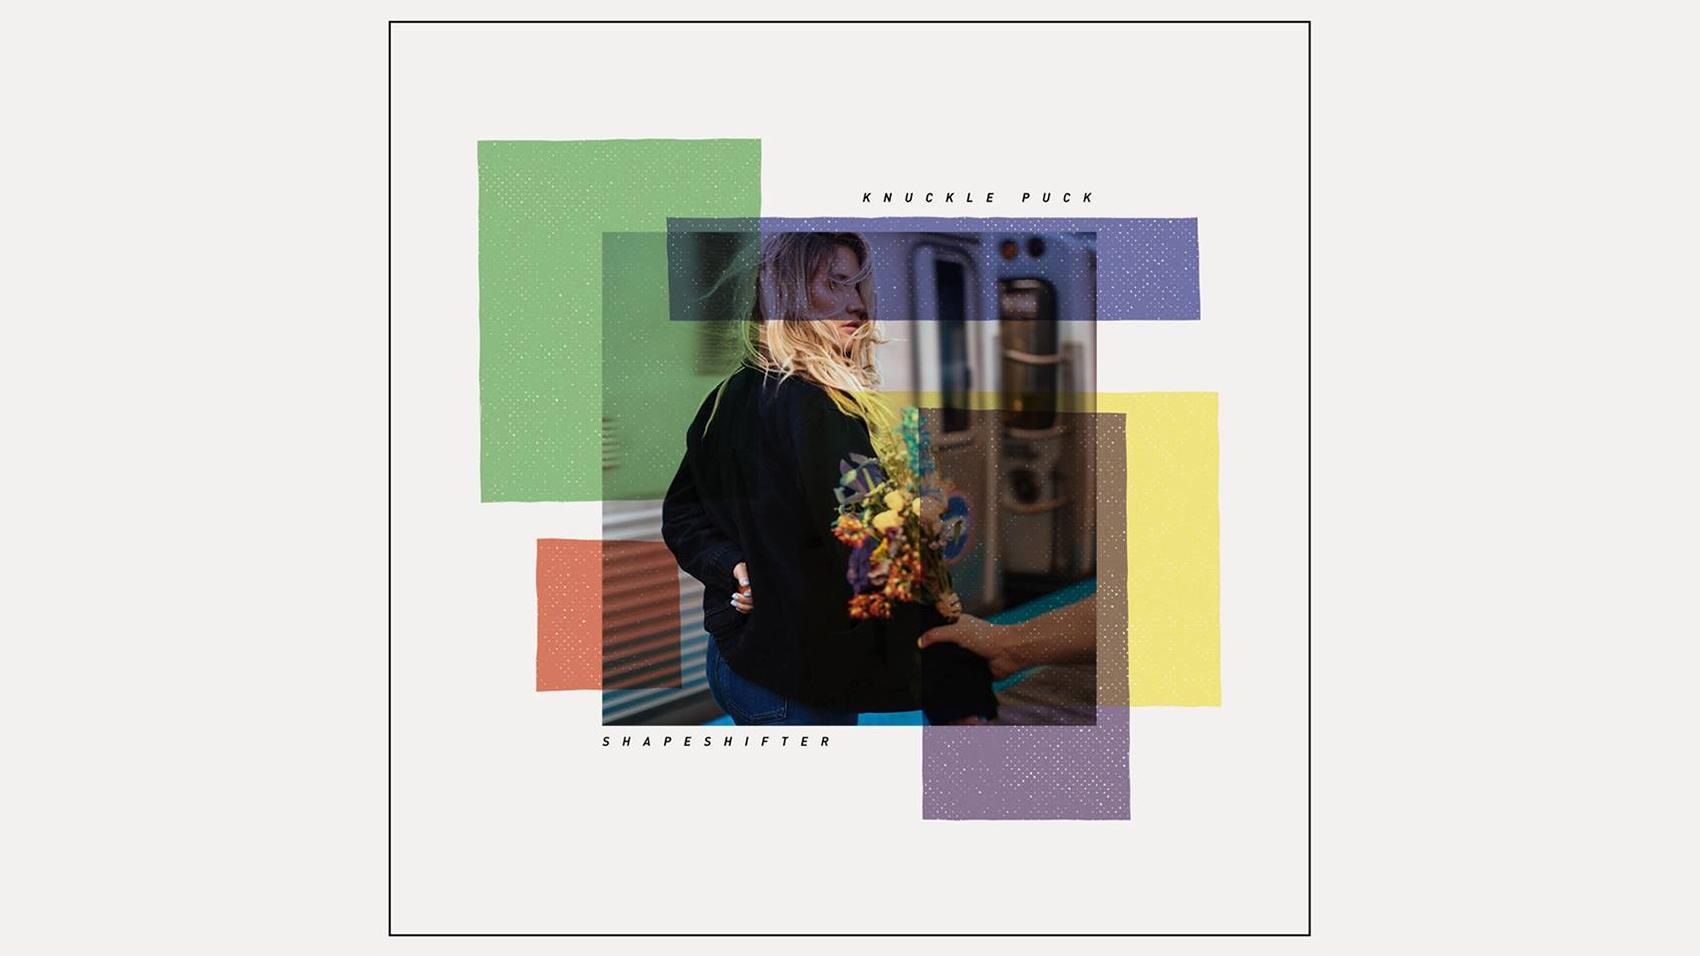 Stream The New Knuckle Puck Album 'Shapeshifter' | Riot Fest